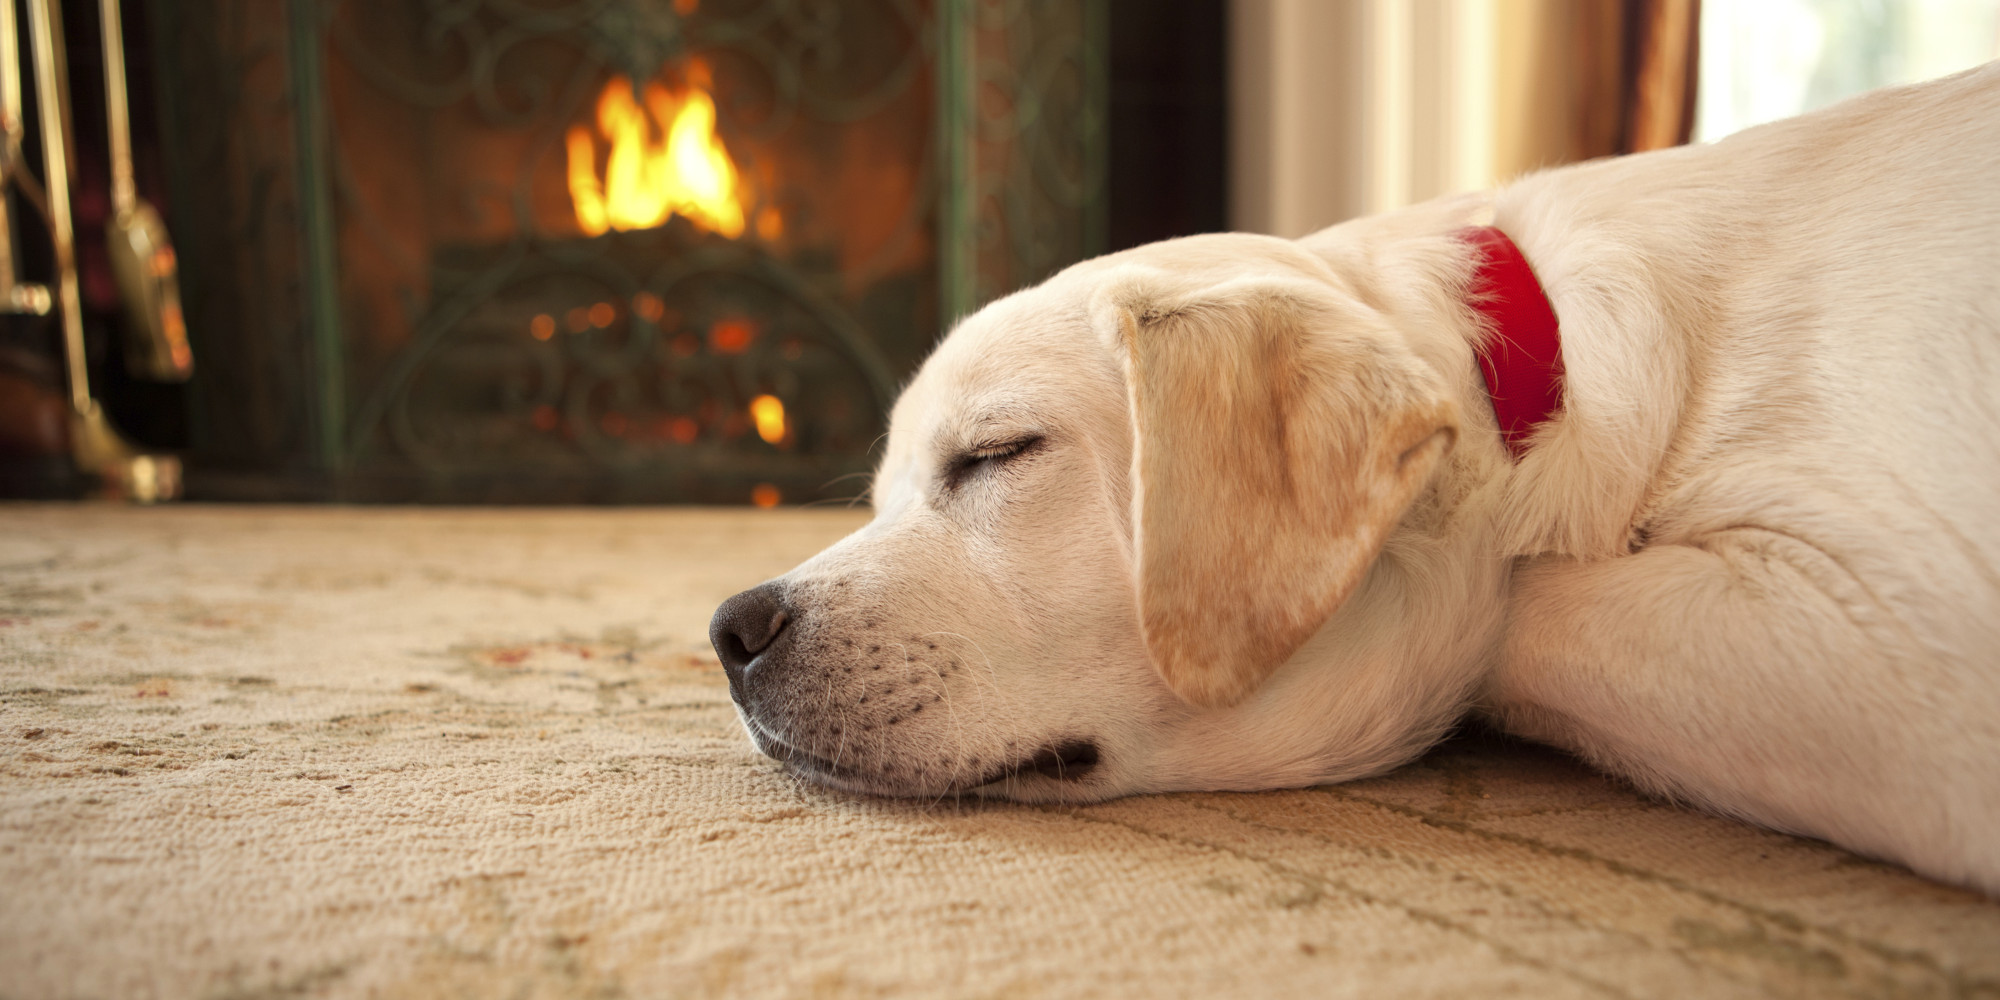 chilled-out-dogs-winter-wellness-2.jpg